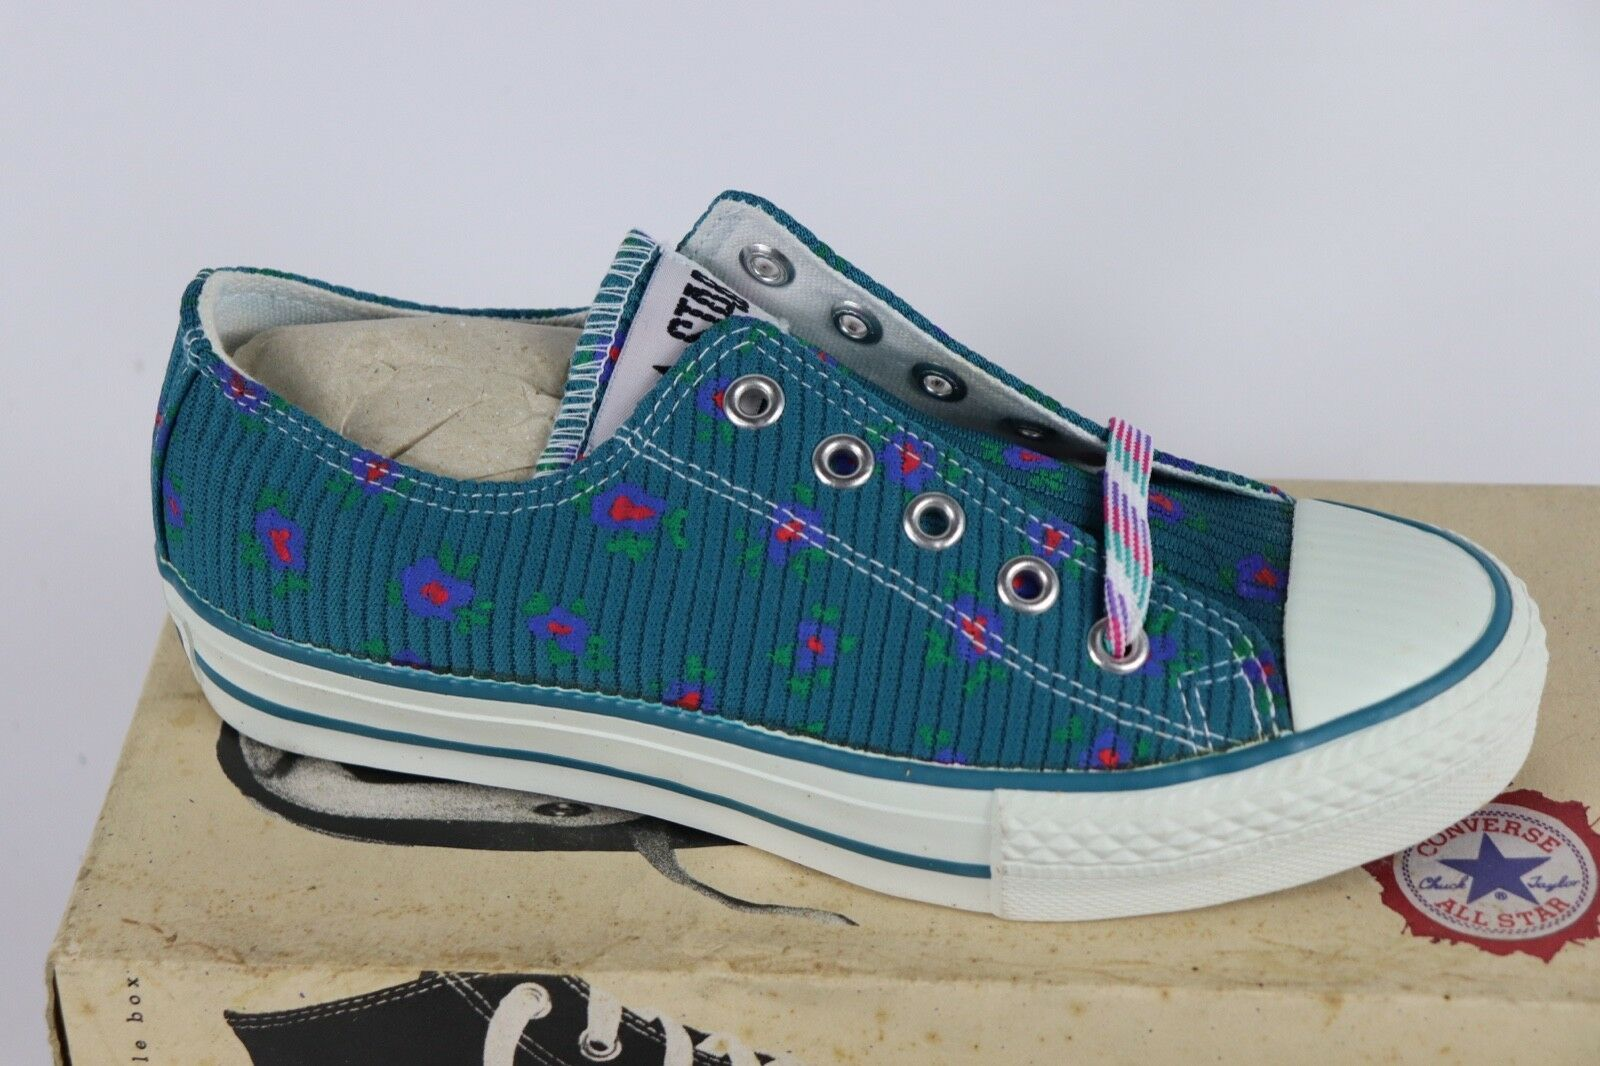 Vtg New Converse Mens 4 Wmns 6 Longjohn Print A/S Canvas Ox Chuck Taylor Shoes image 5